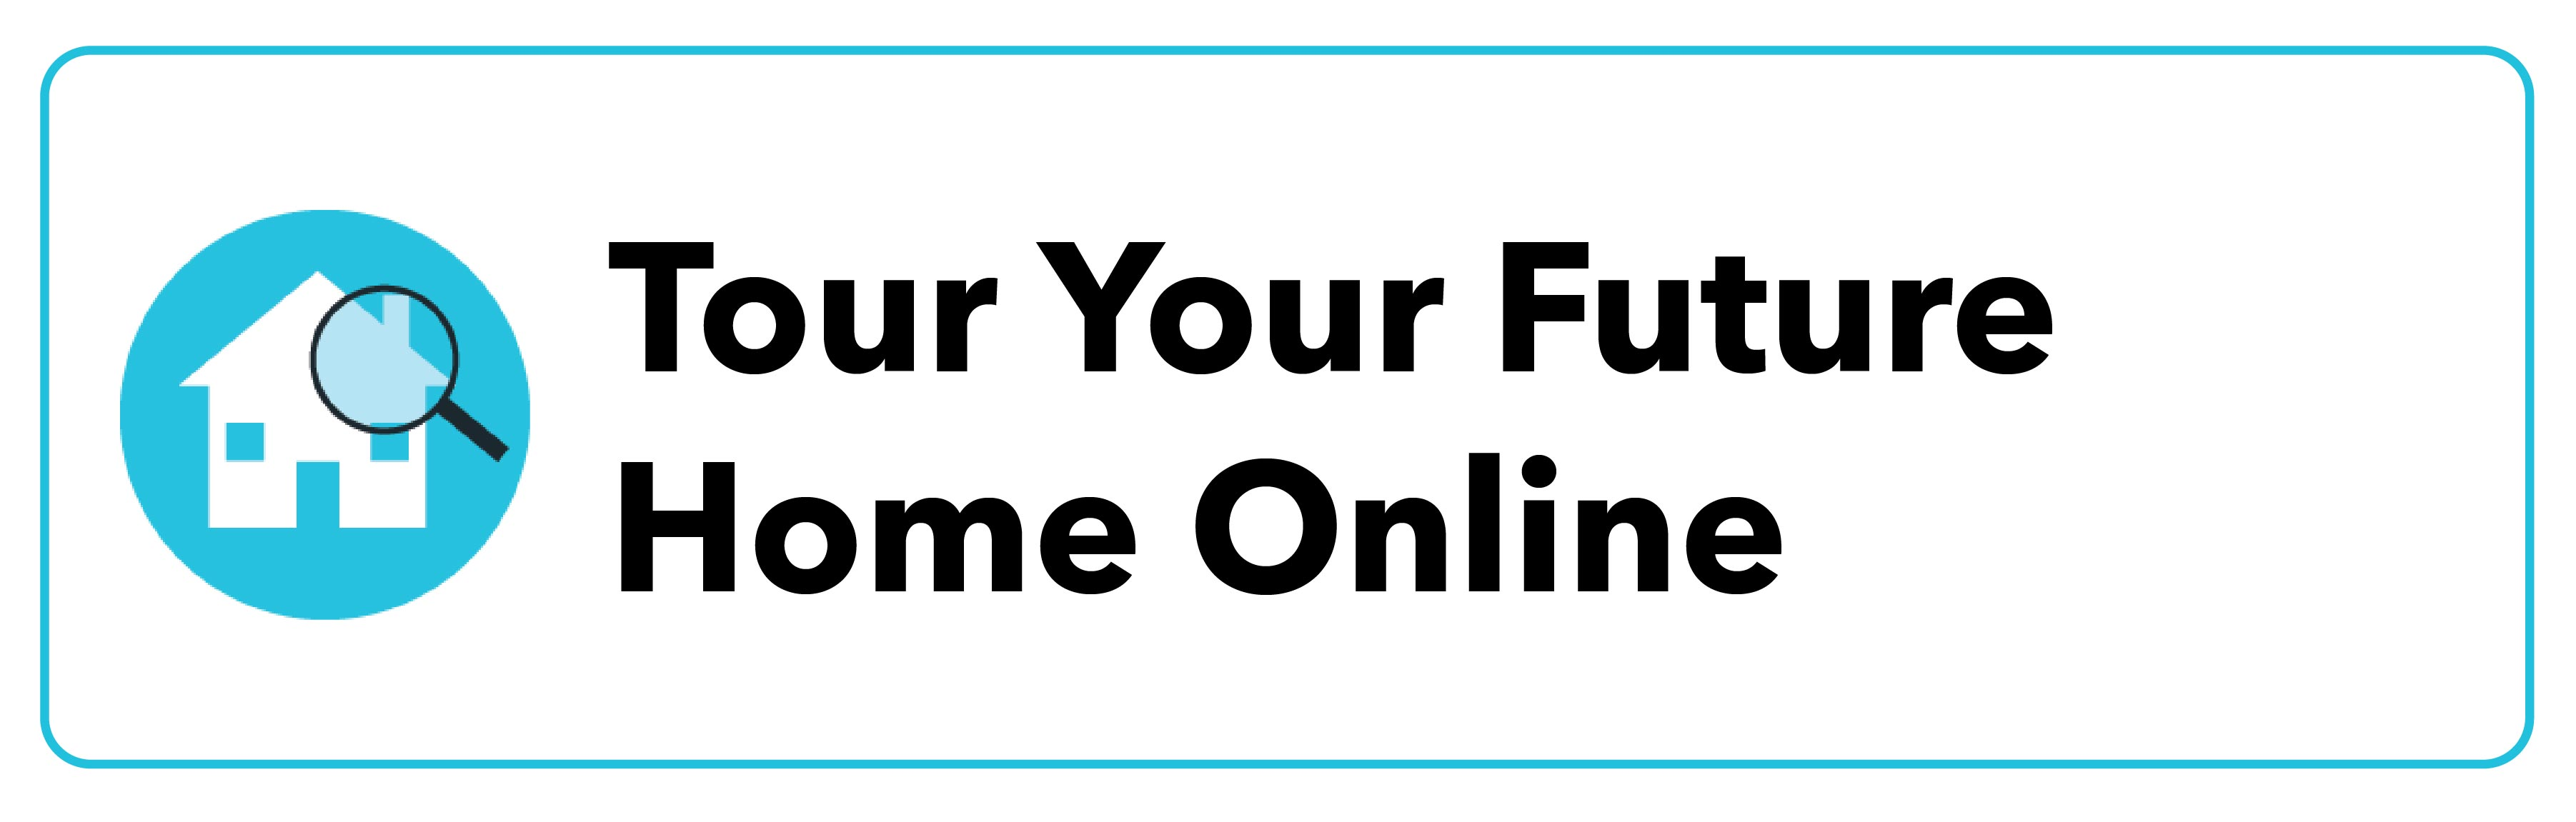 Tag Your Future Home Online